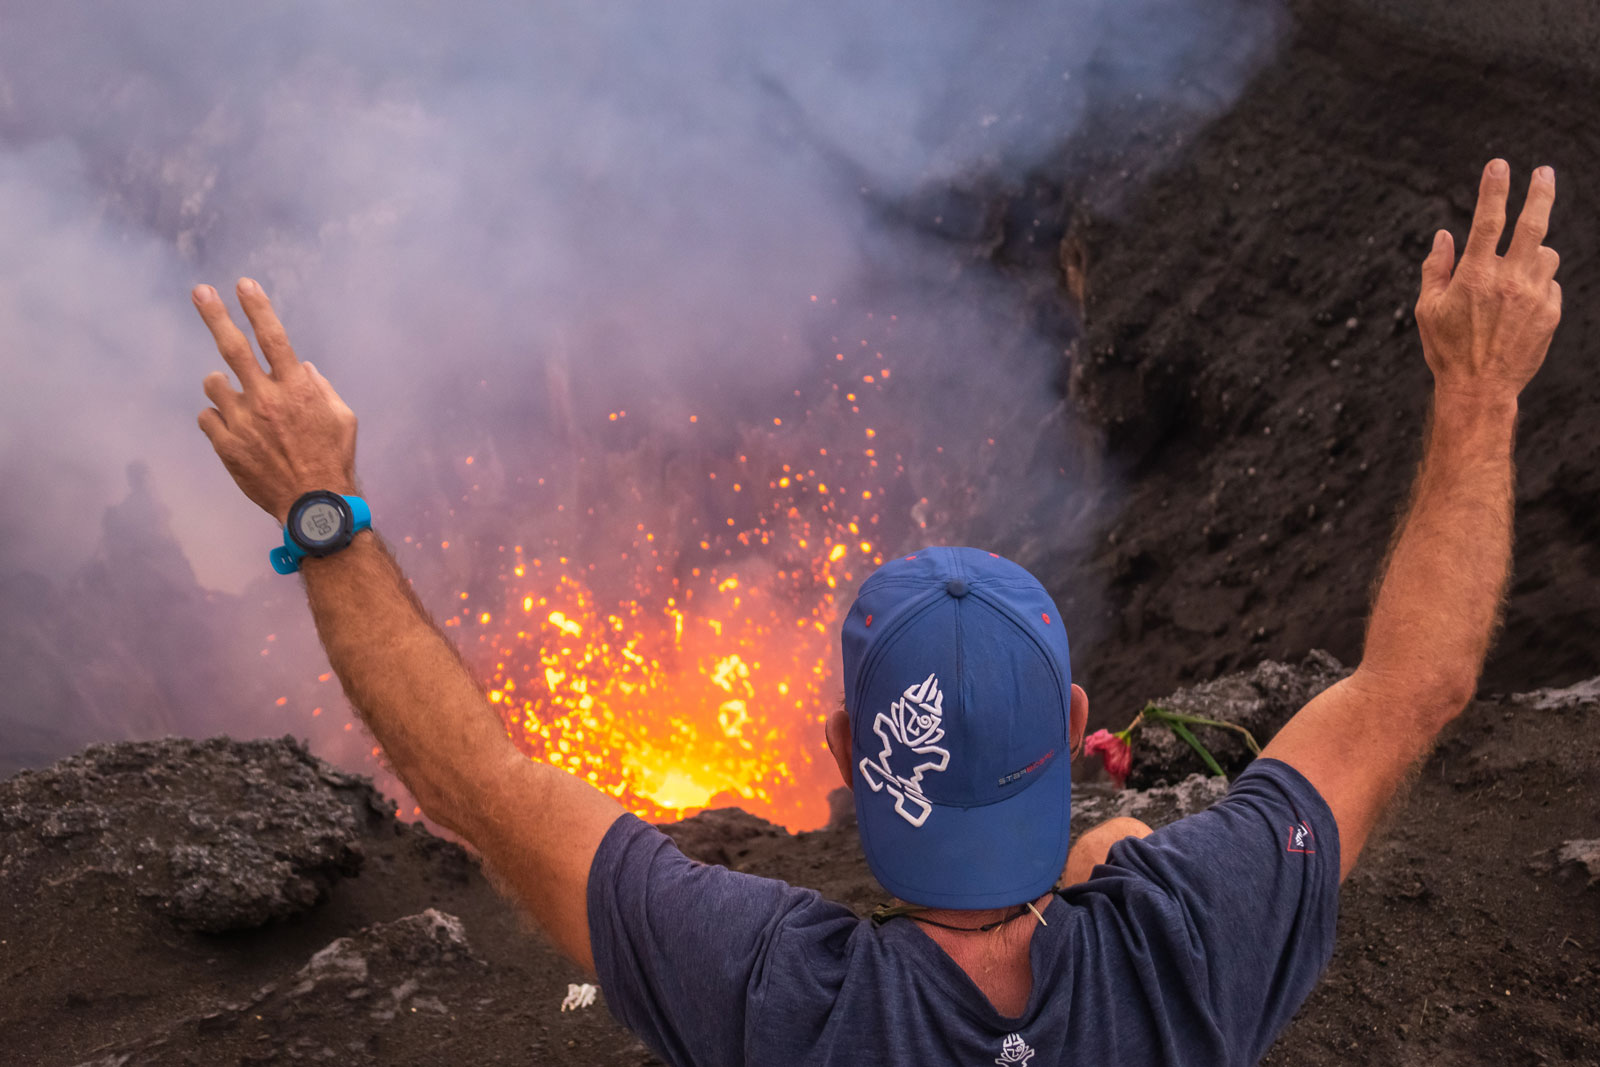 Starboard-SUP-Bart-de-Zwart-Trevor-Tunnington-Explore-the-Islands-of-Vanuatu-by-Stand-Up-Paddleboard-volcanoe-erupt